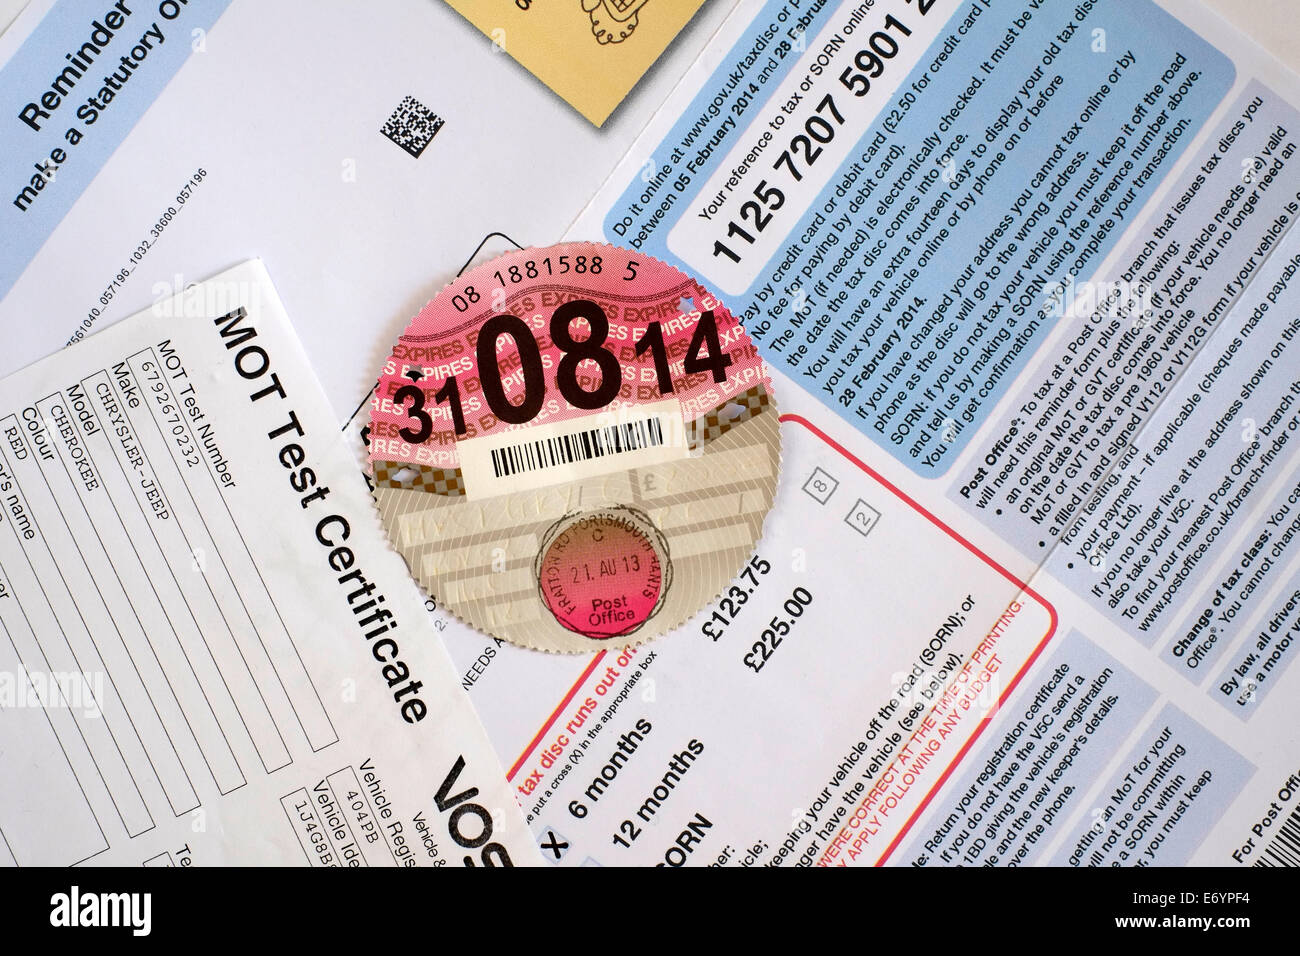 Car documents uk stock photos car documents uk stock images alamy expired paper car tax disc laying on top of motoring documents stock image 1betcityfo Image collections